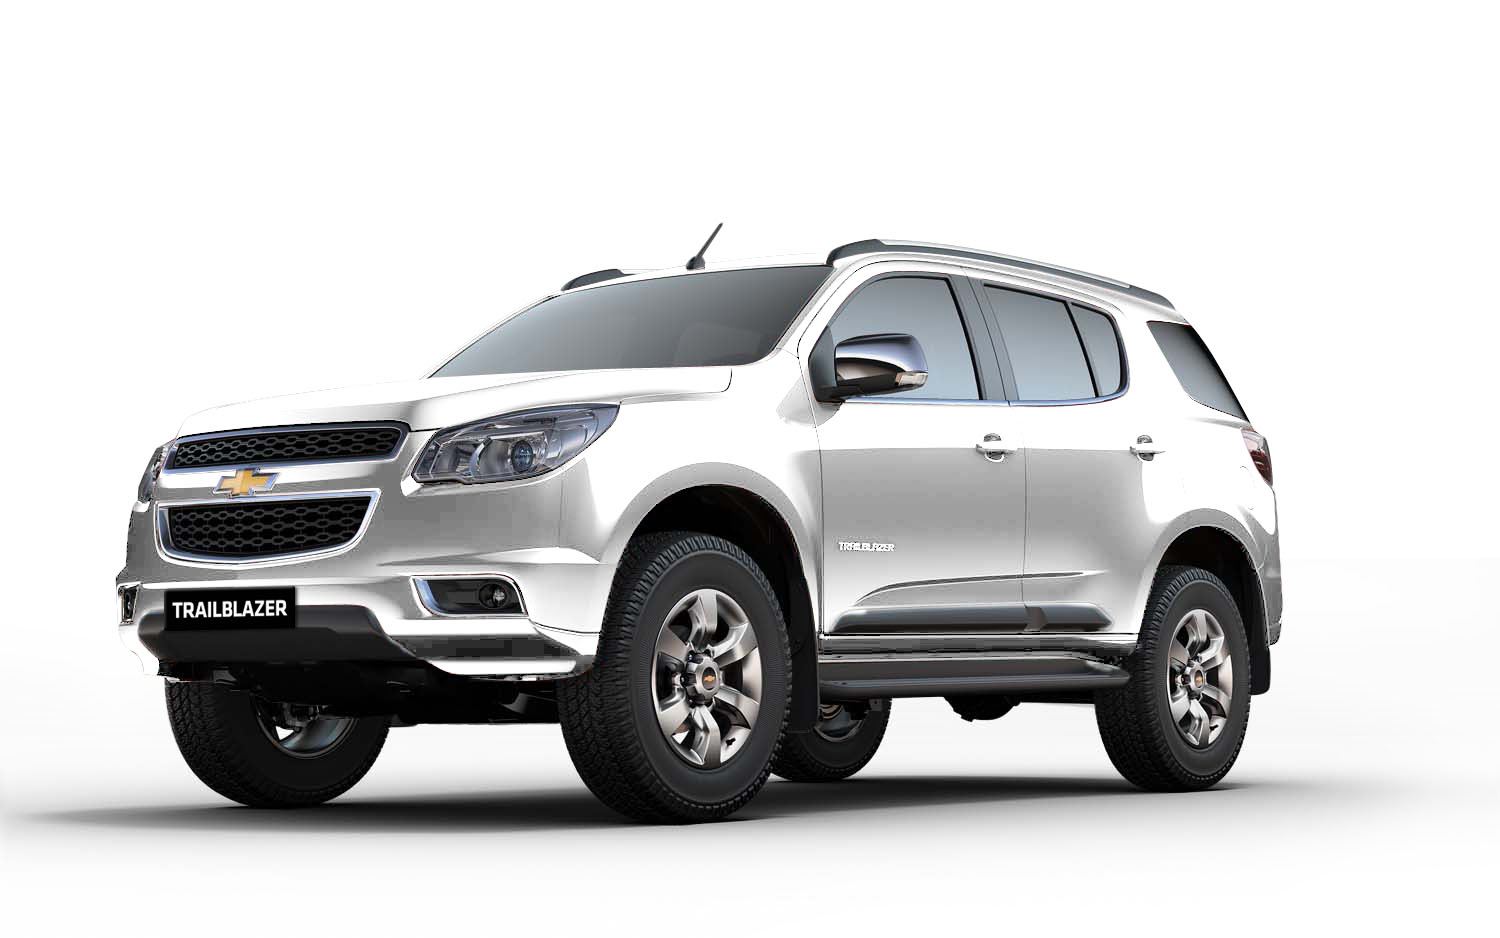 chevrolet trailblazer suv to rival the toyota fortuner shifting gears. Black Bedroom Furniture Sets. Home Design Ideas